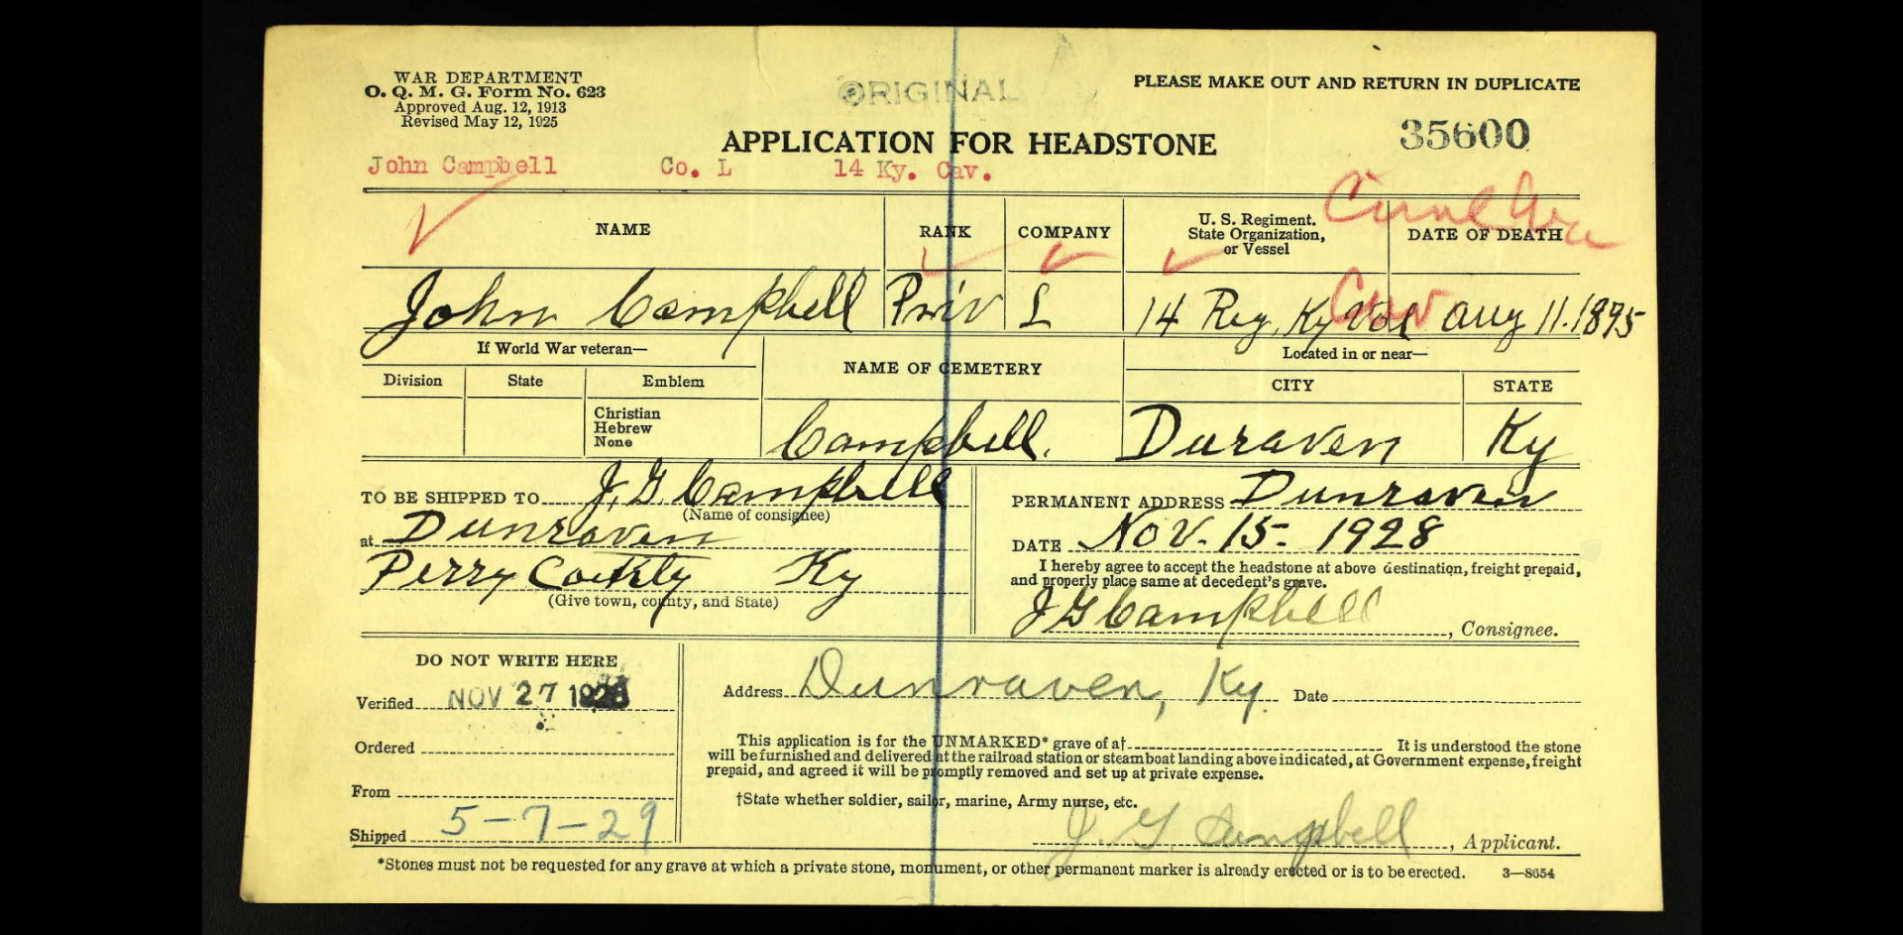 J. G. Campbell's request for a military headstone for his father John Campbell